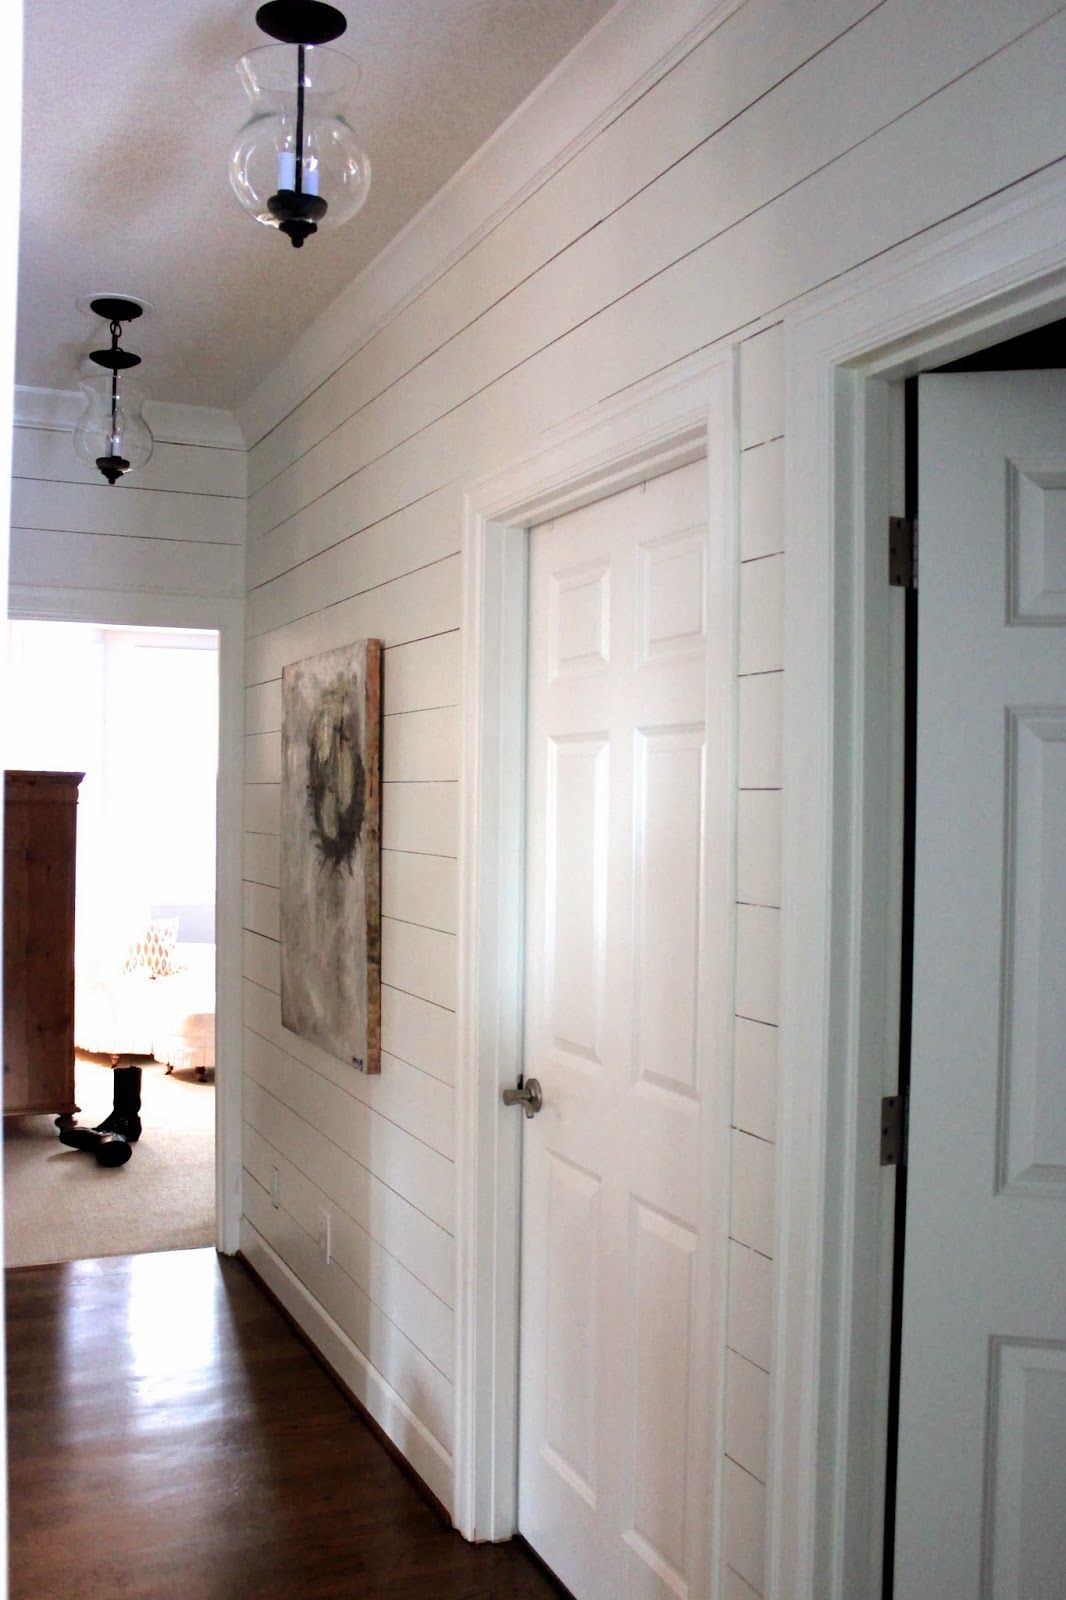 Forevercottage planked wall hallway gets new light fixtures forevercottage planked wall hallway gets new light fixtures sisterspd